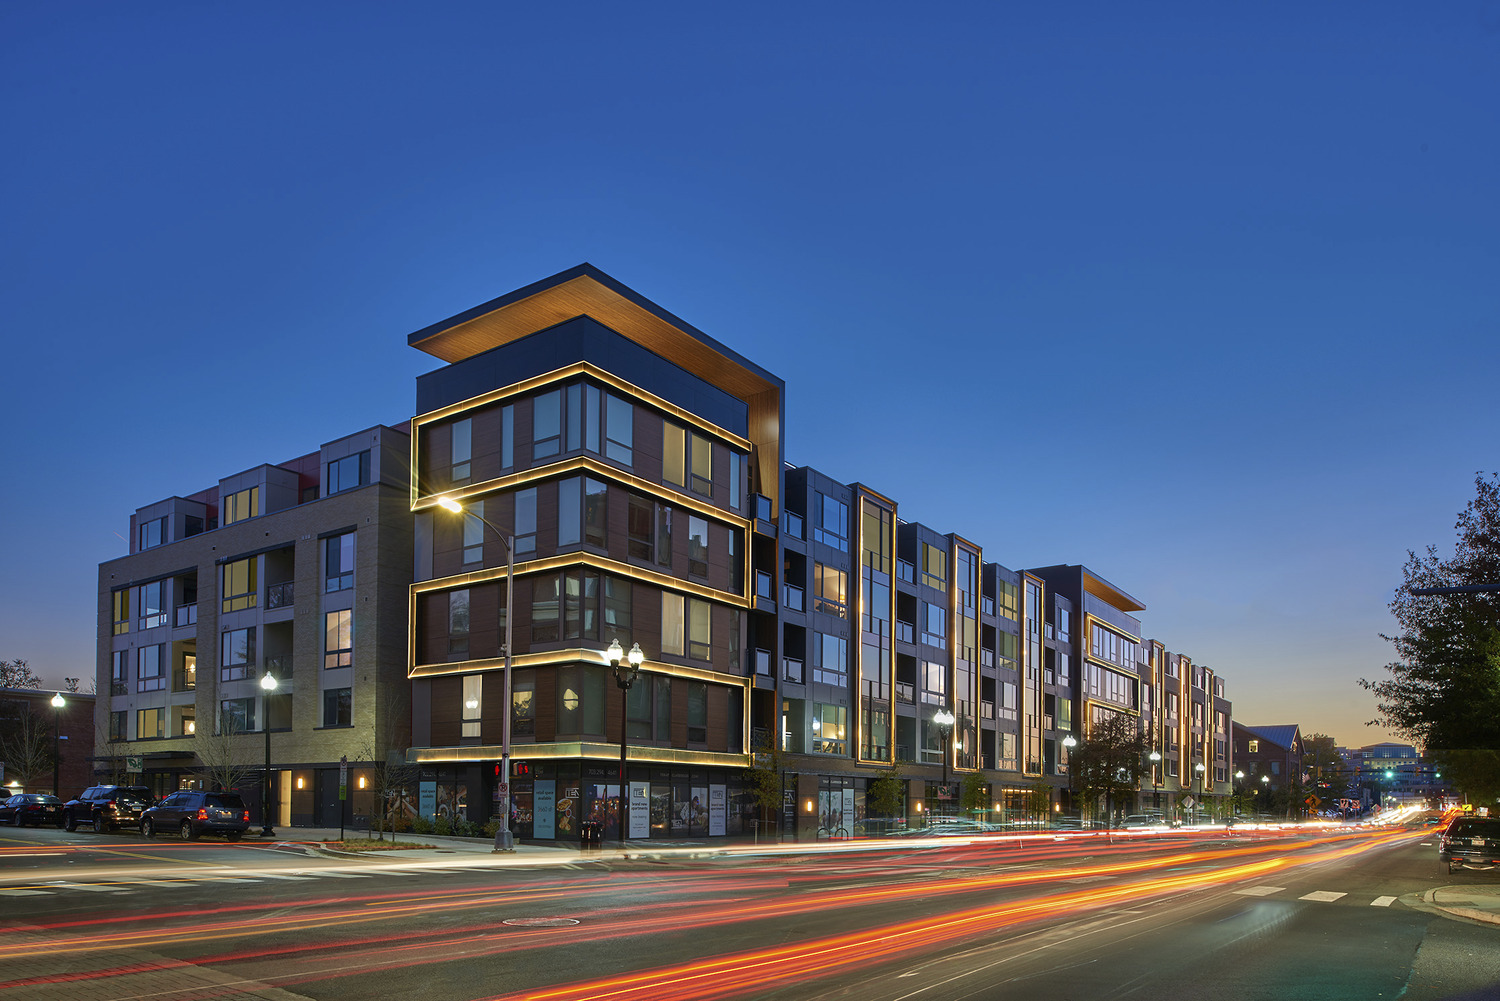 CBG builds Ten at Clarendon, a 143-Unit LEED® Platinum Community with Retail and Office Space in Arlington, VA - Image #1